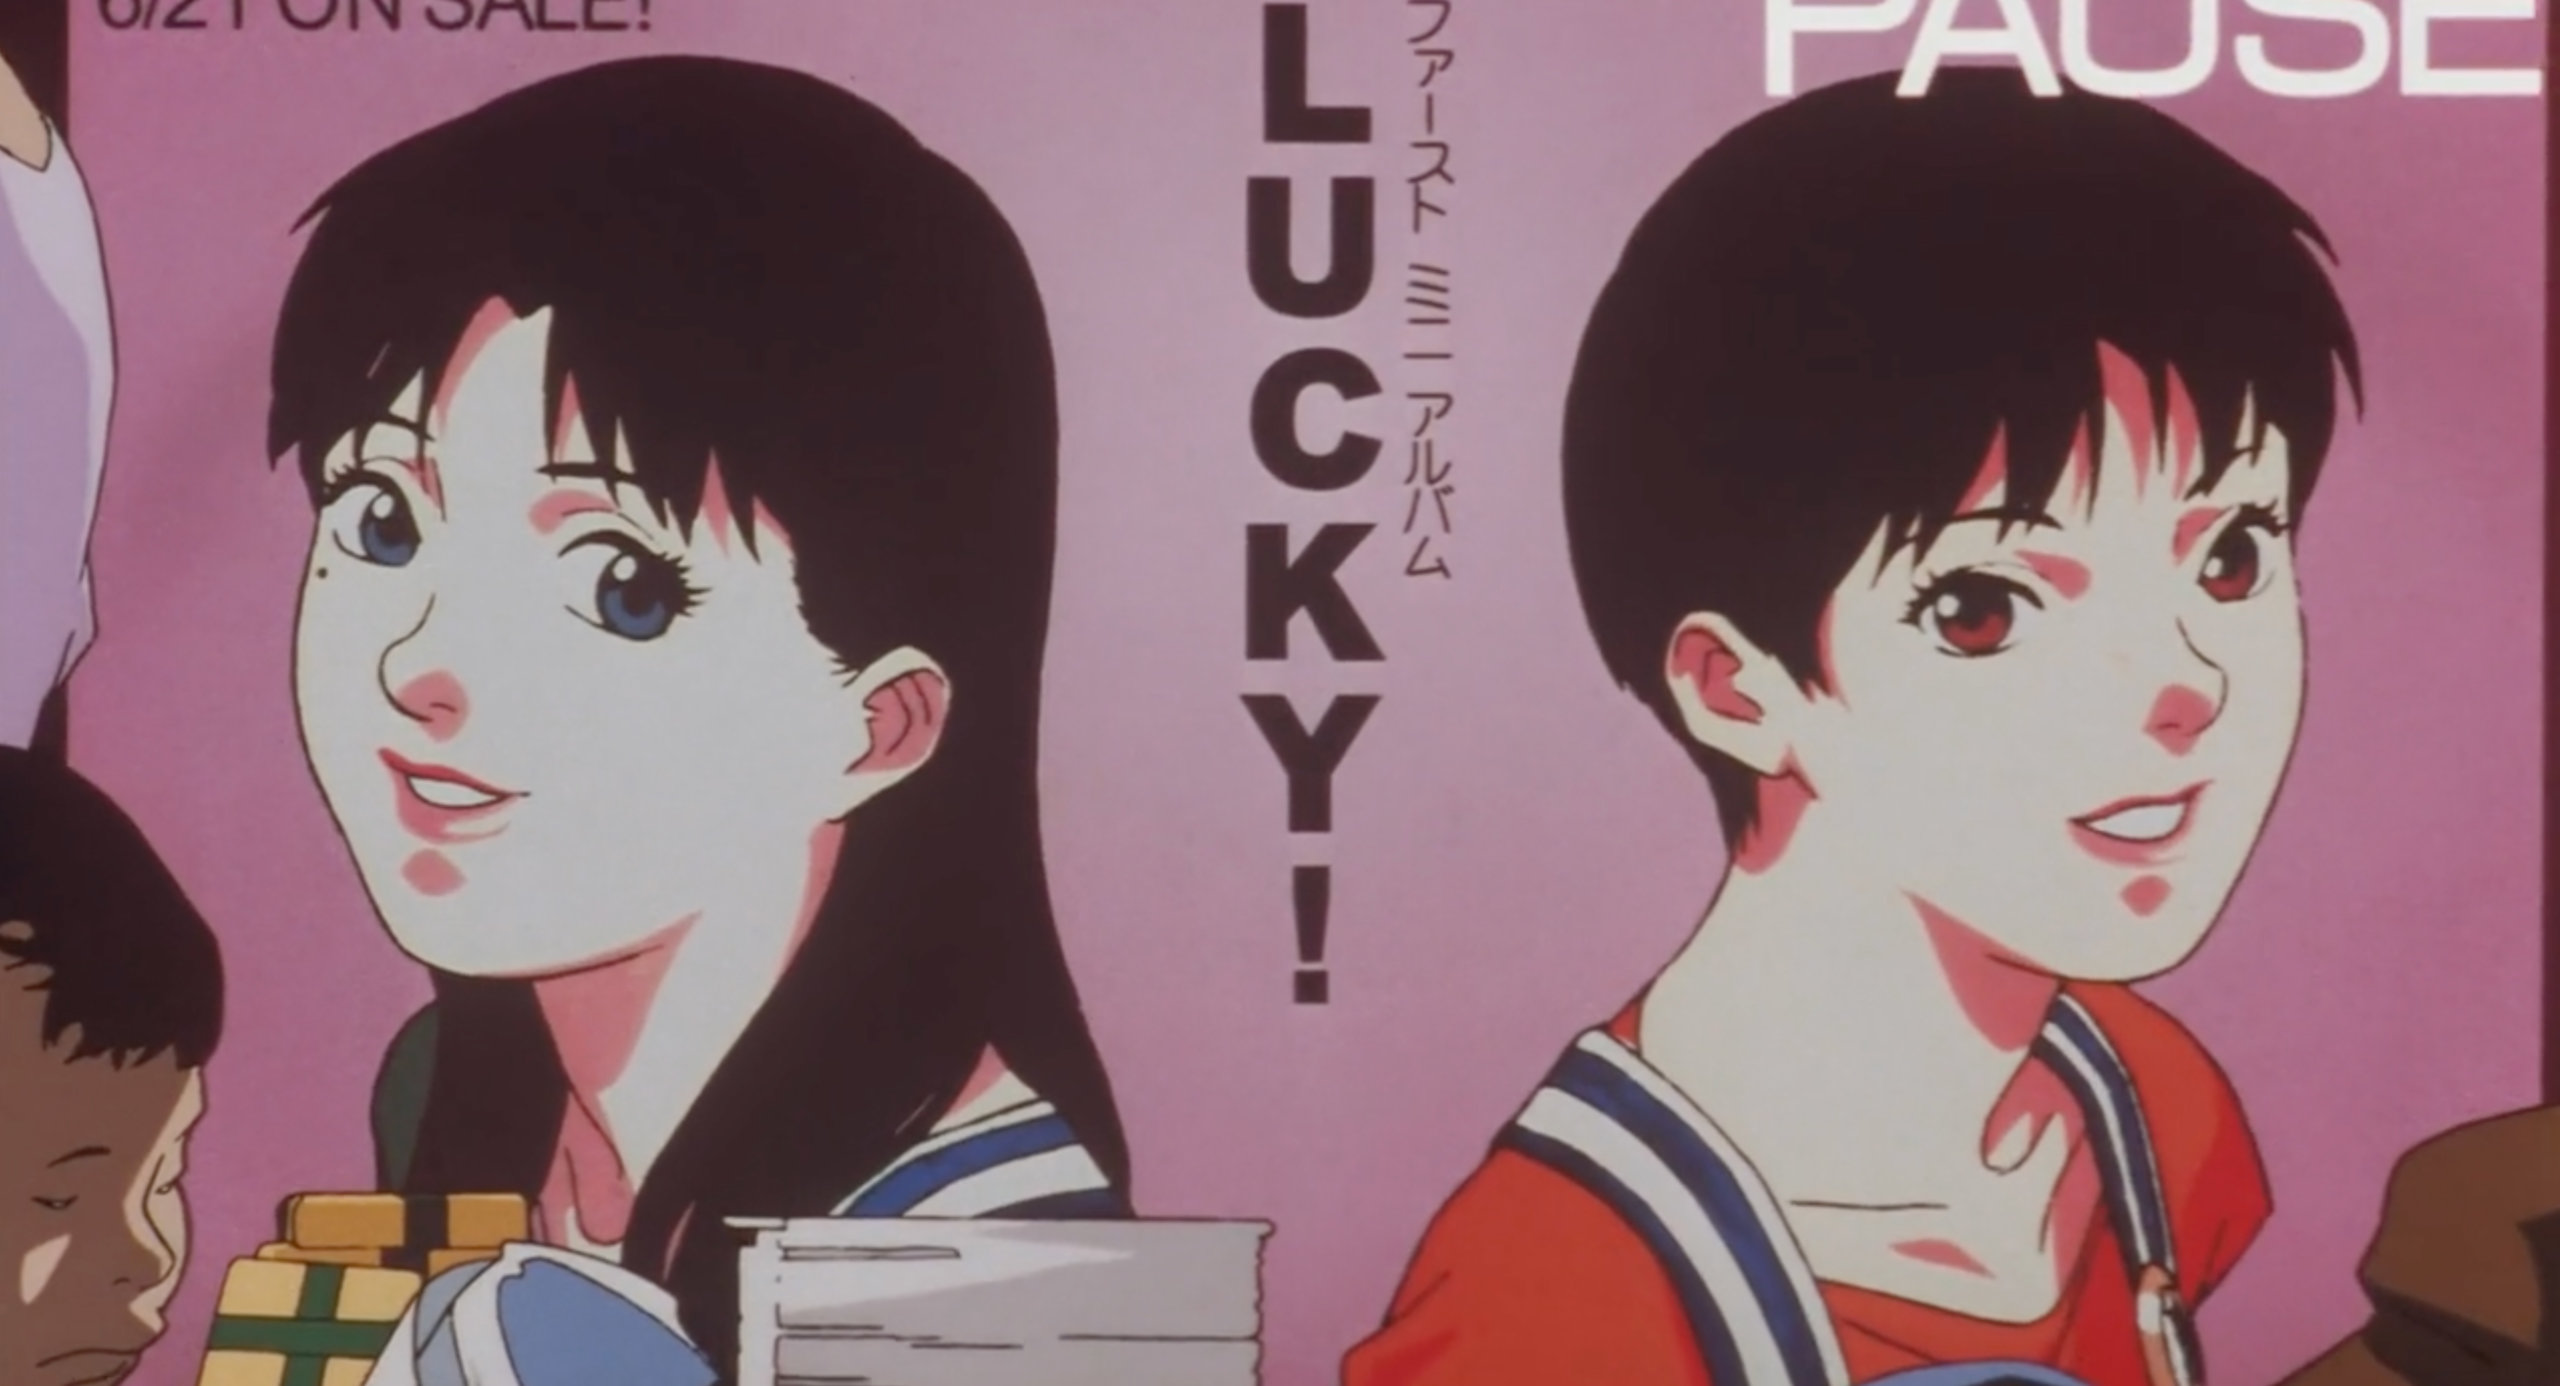 A CHAM! poster in Perfect Blue